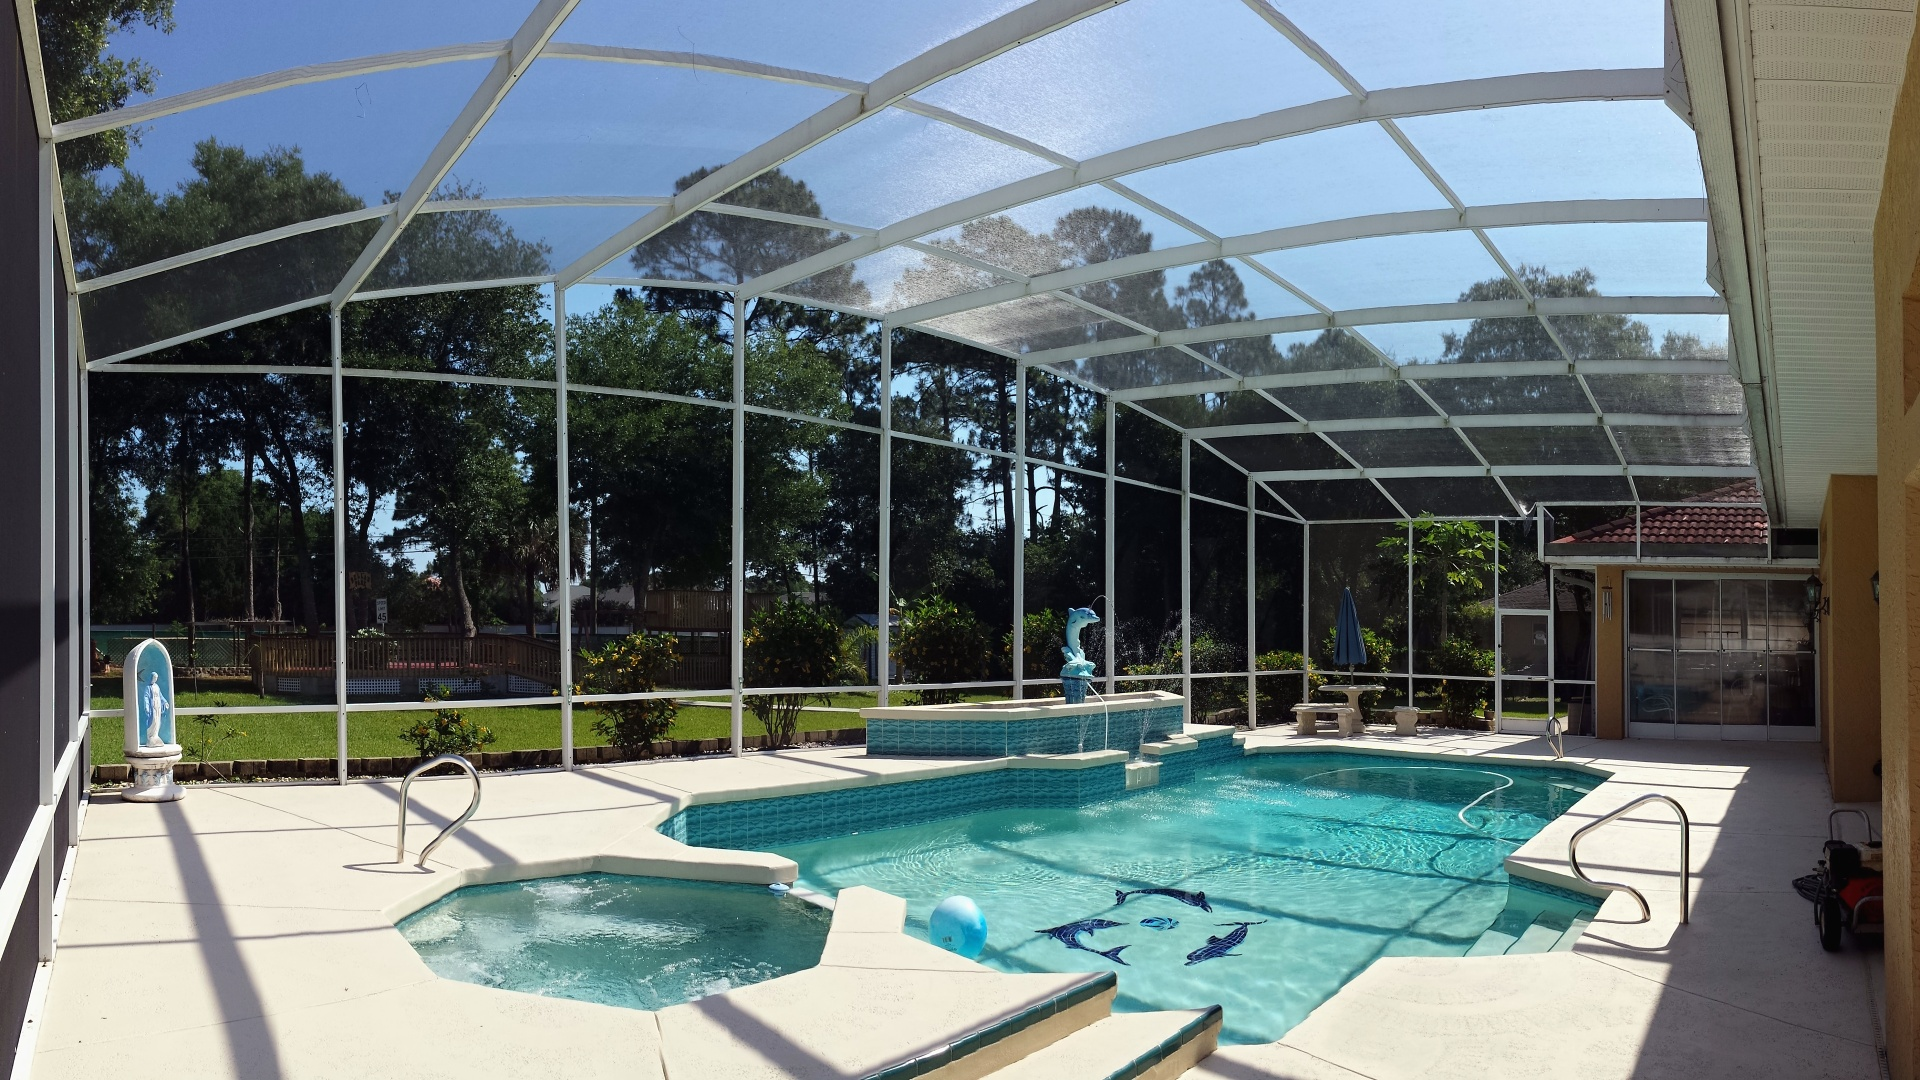 pool-screen-repair-port-orange-07-1080p.jpg